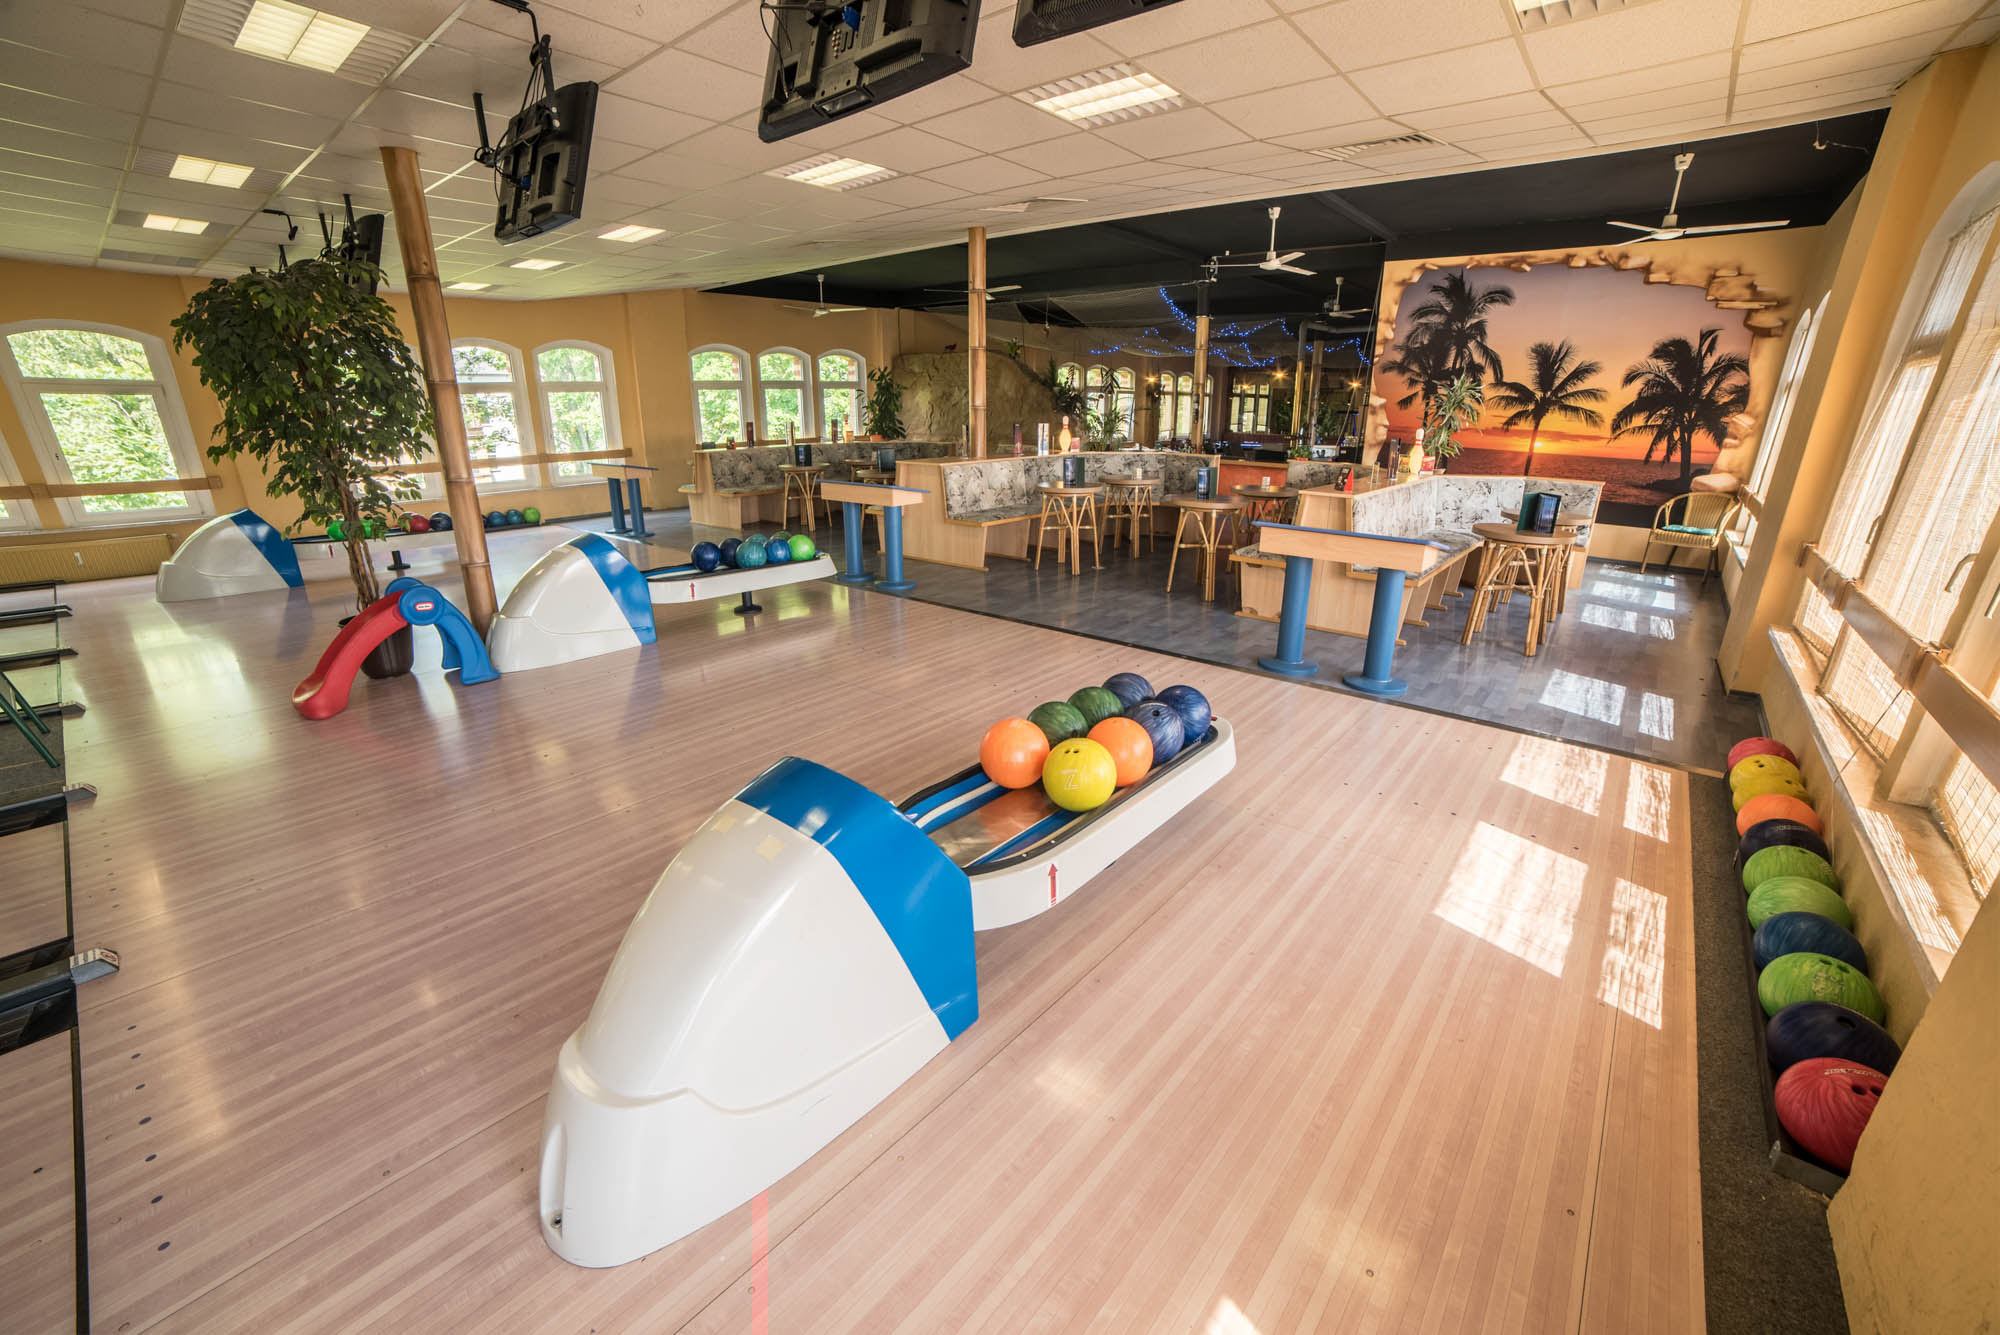 World of Bowl Oelsnitz - Kenny Pool Fotografie